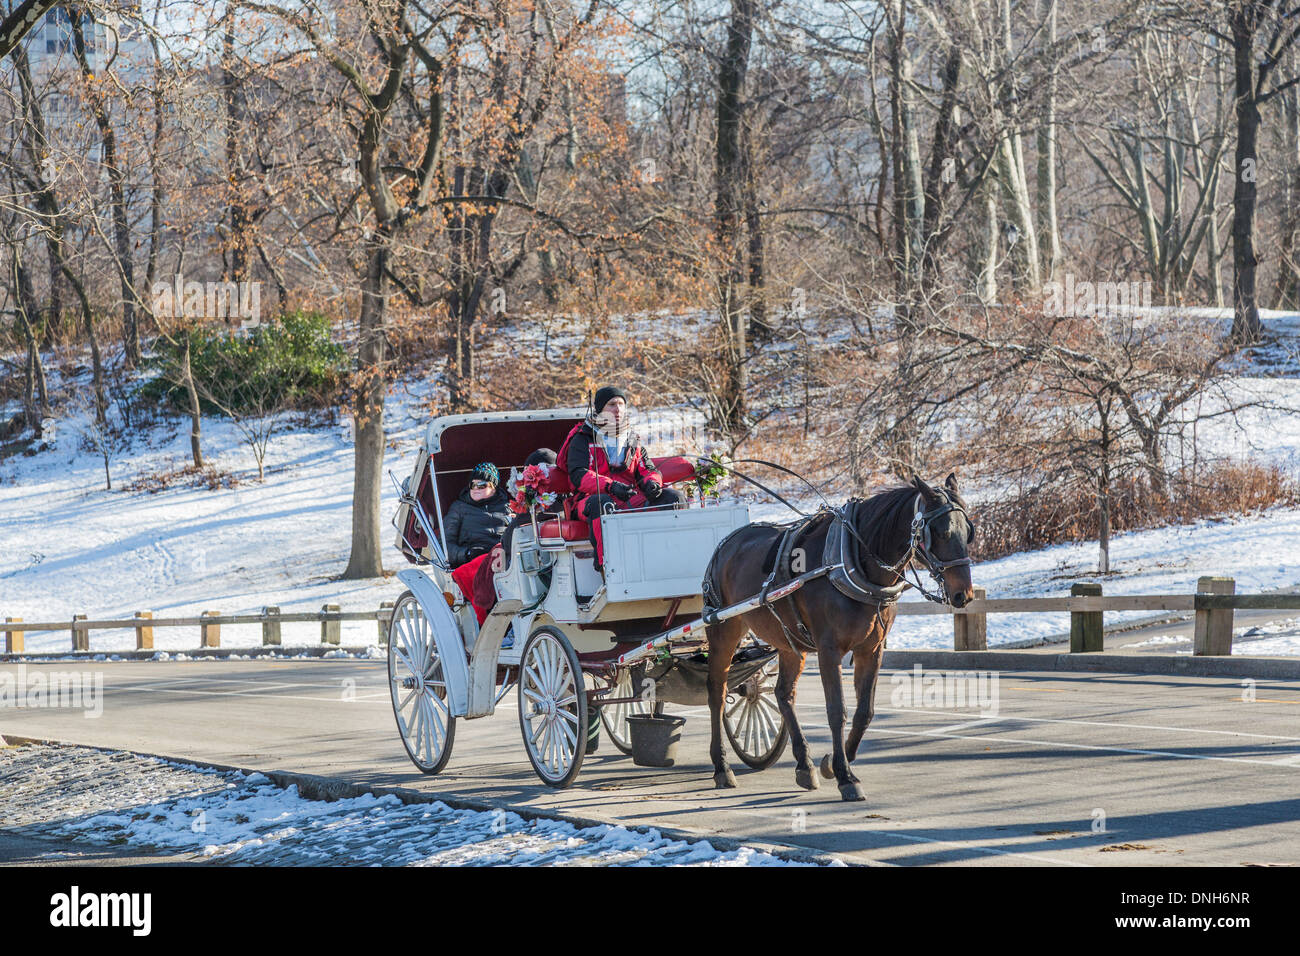 horse and carriage ride for tourists in the snow in winter in central stock photo 64917379 alamy. Black Bedroom Furniture Sets. Home Design Ideas